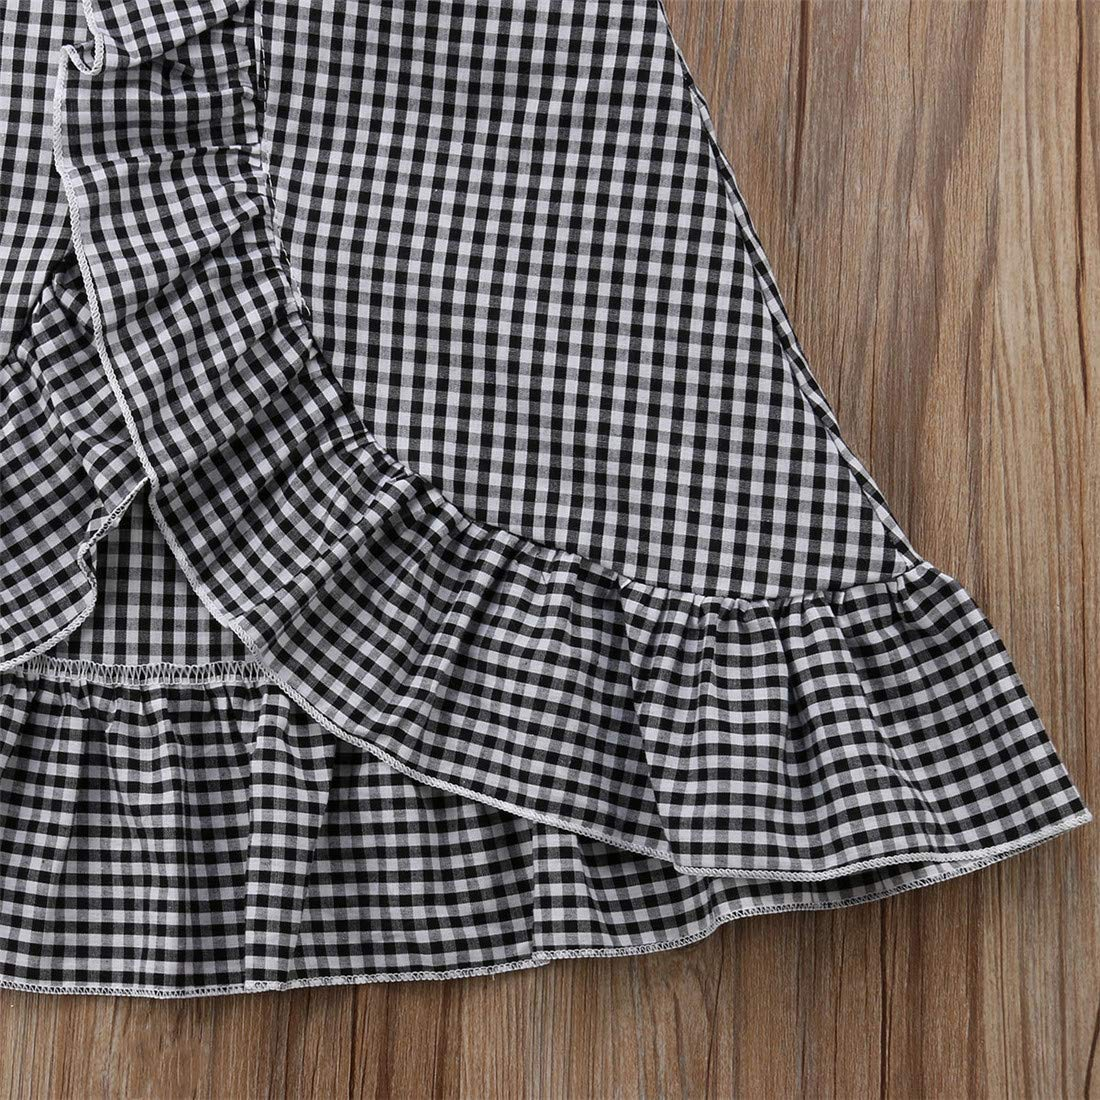 Baby Girl Toddler 2/3 Sleeve Black Crop Top + Grey Shorts Bowknot Skirts Outfit Clothes 2Pcs/ Set (Plaid, 6-12 Months) by Mornbaby (Image #5)